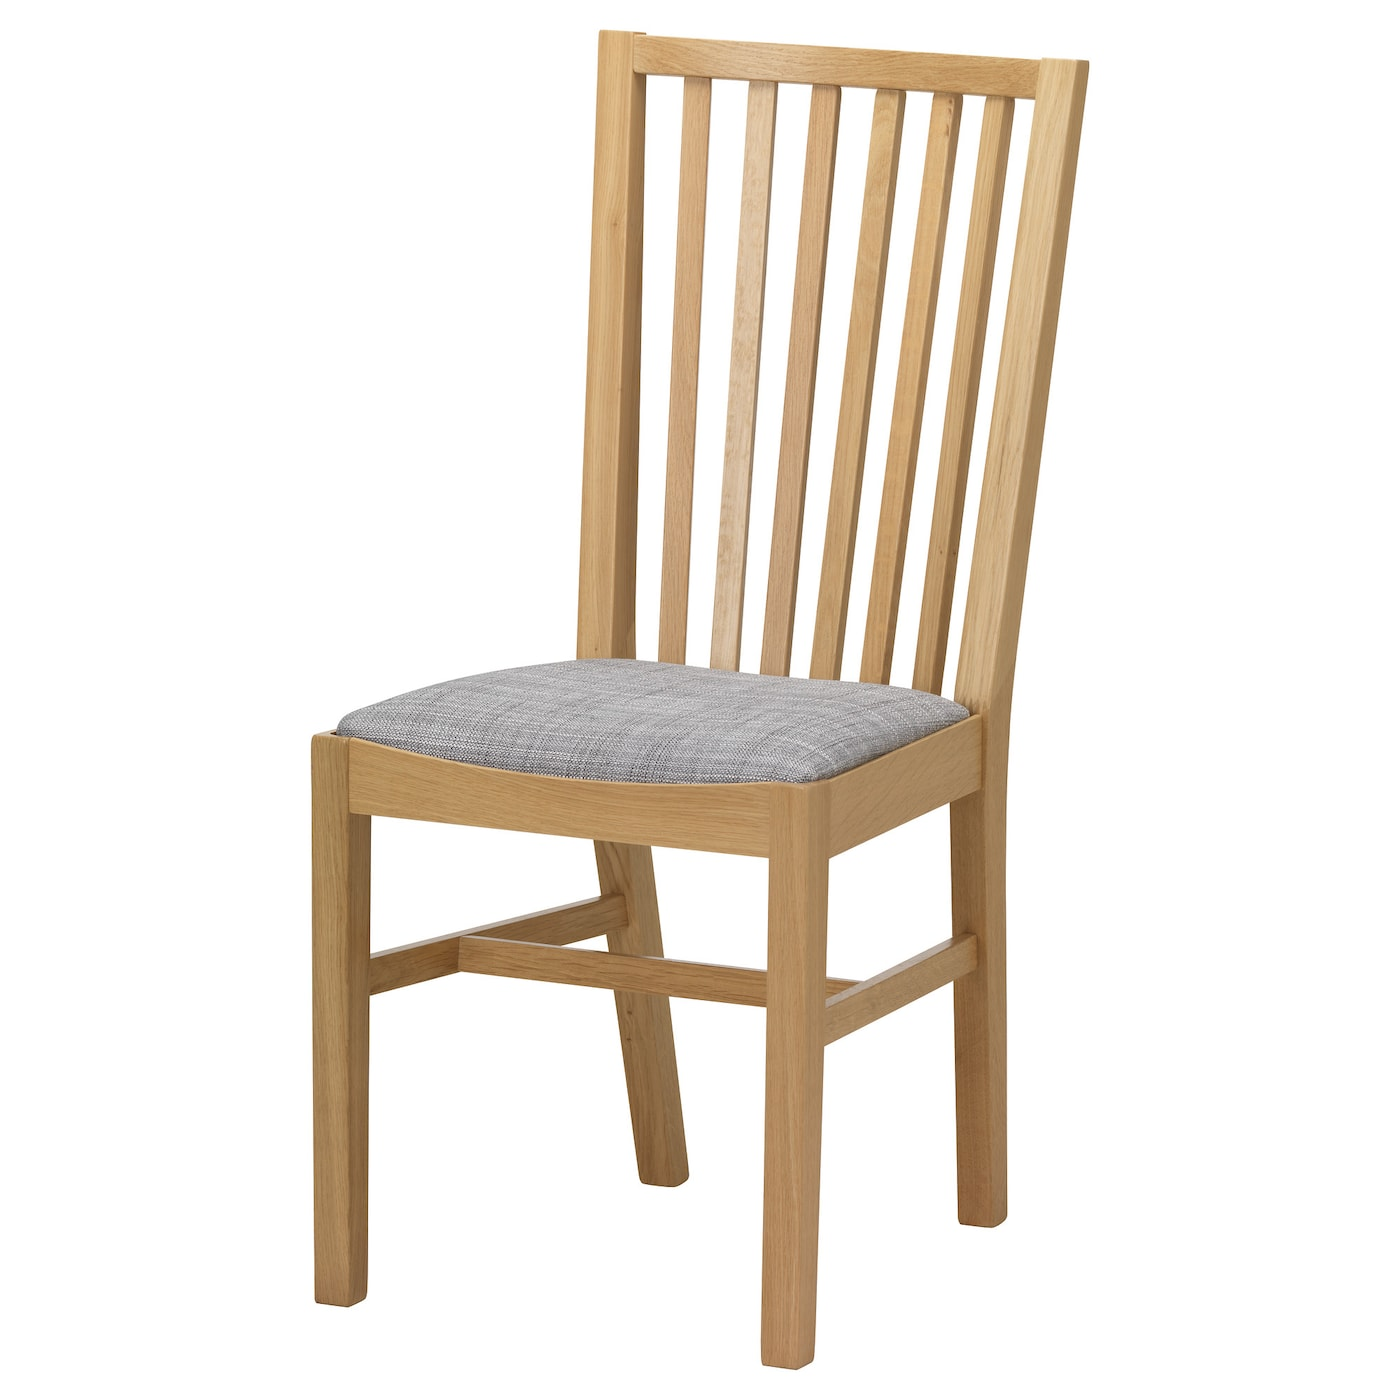 Upholstered Dining Chairs IKEA - Upholstered dining chairs uk